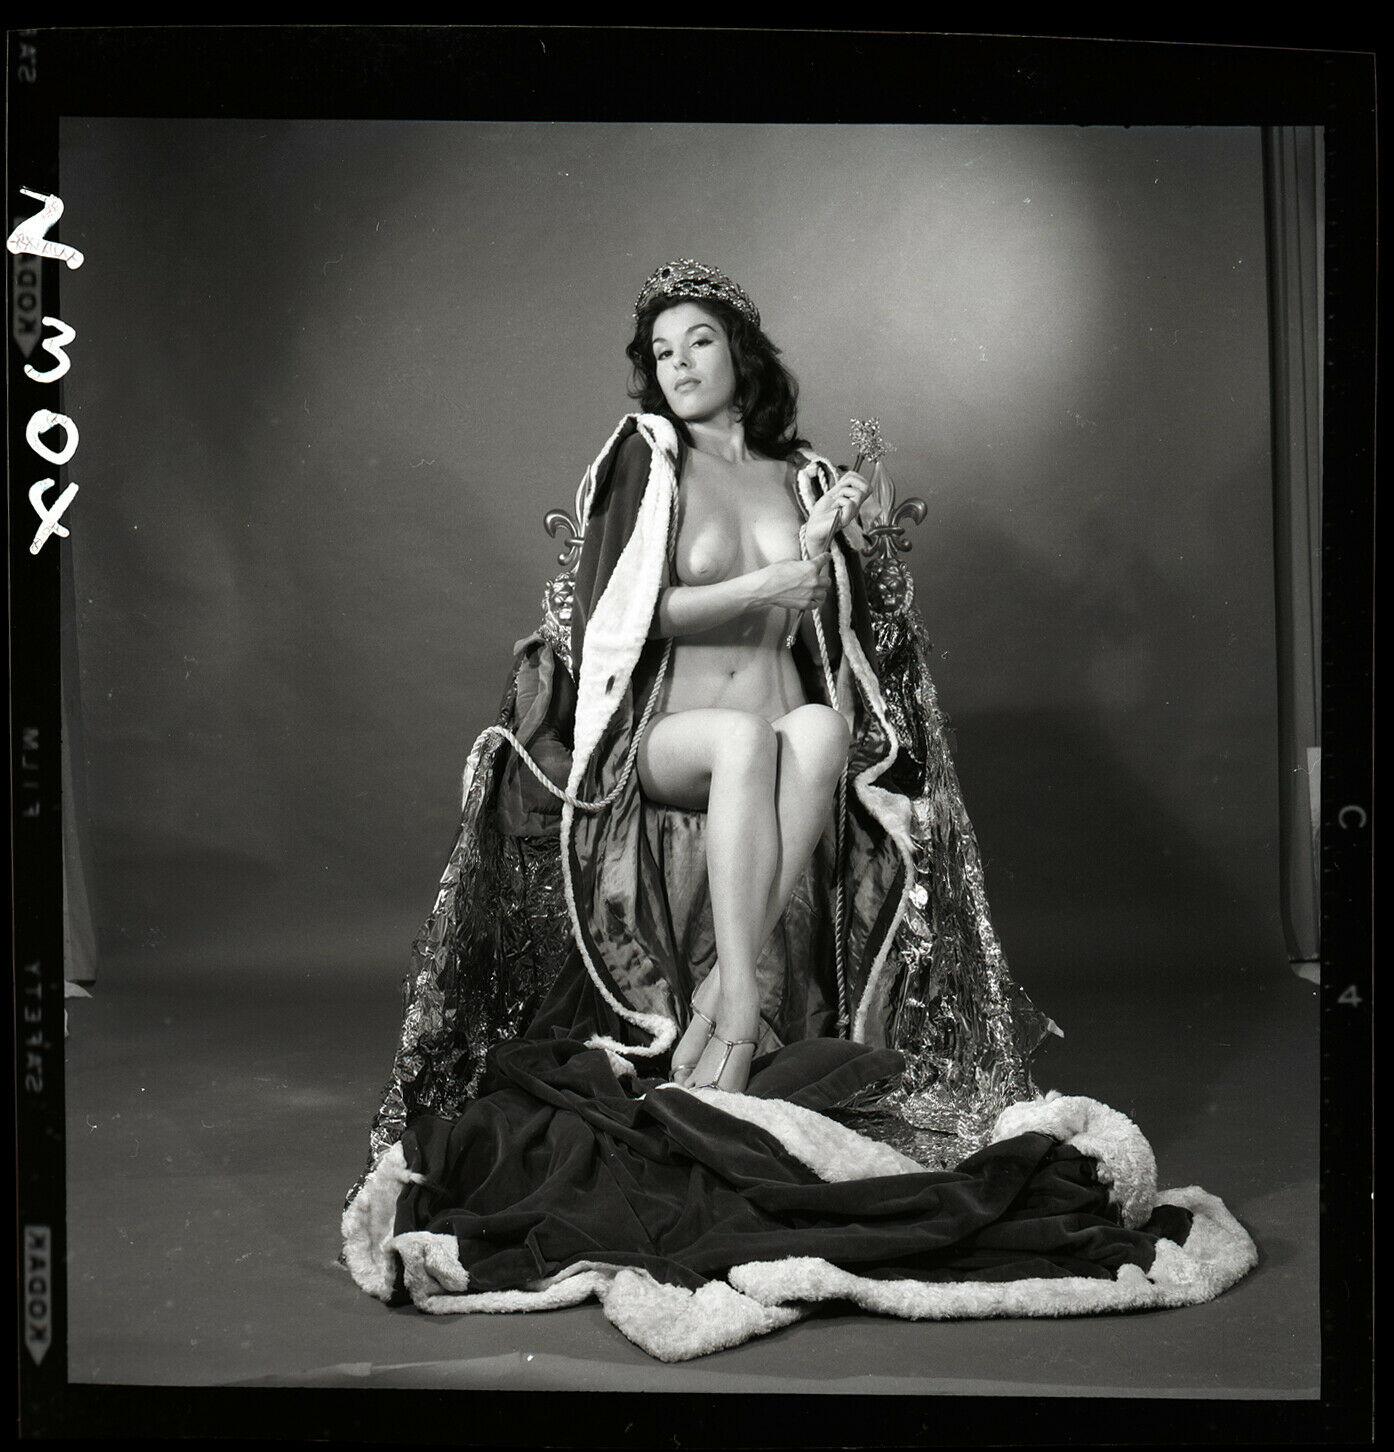 ROGUE MAG ZODIAC FRAN STACY NUDE Bunny Yeager 1961 Orig 2 1/4 Camera Negative - $162.50